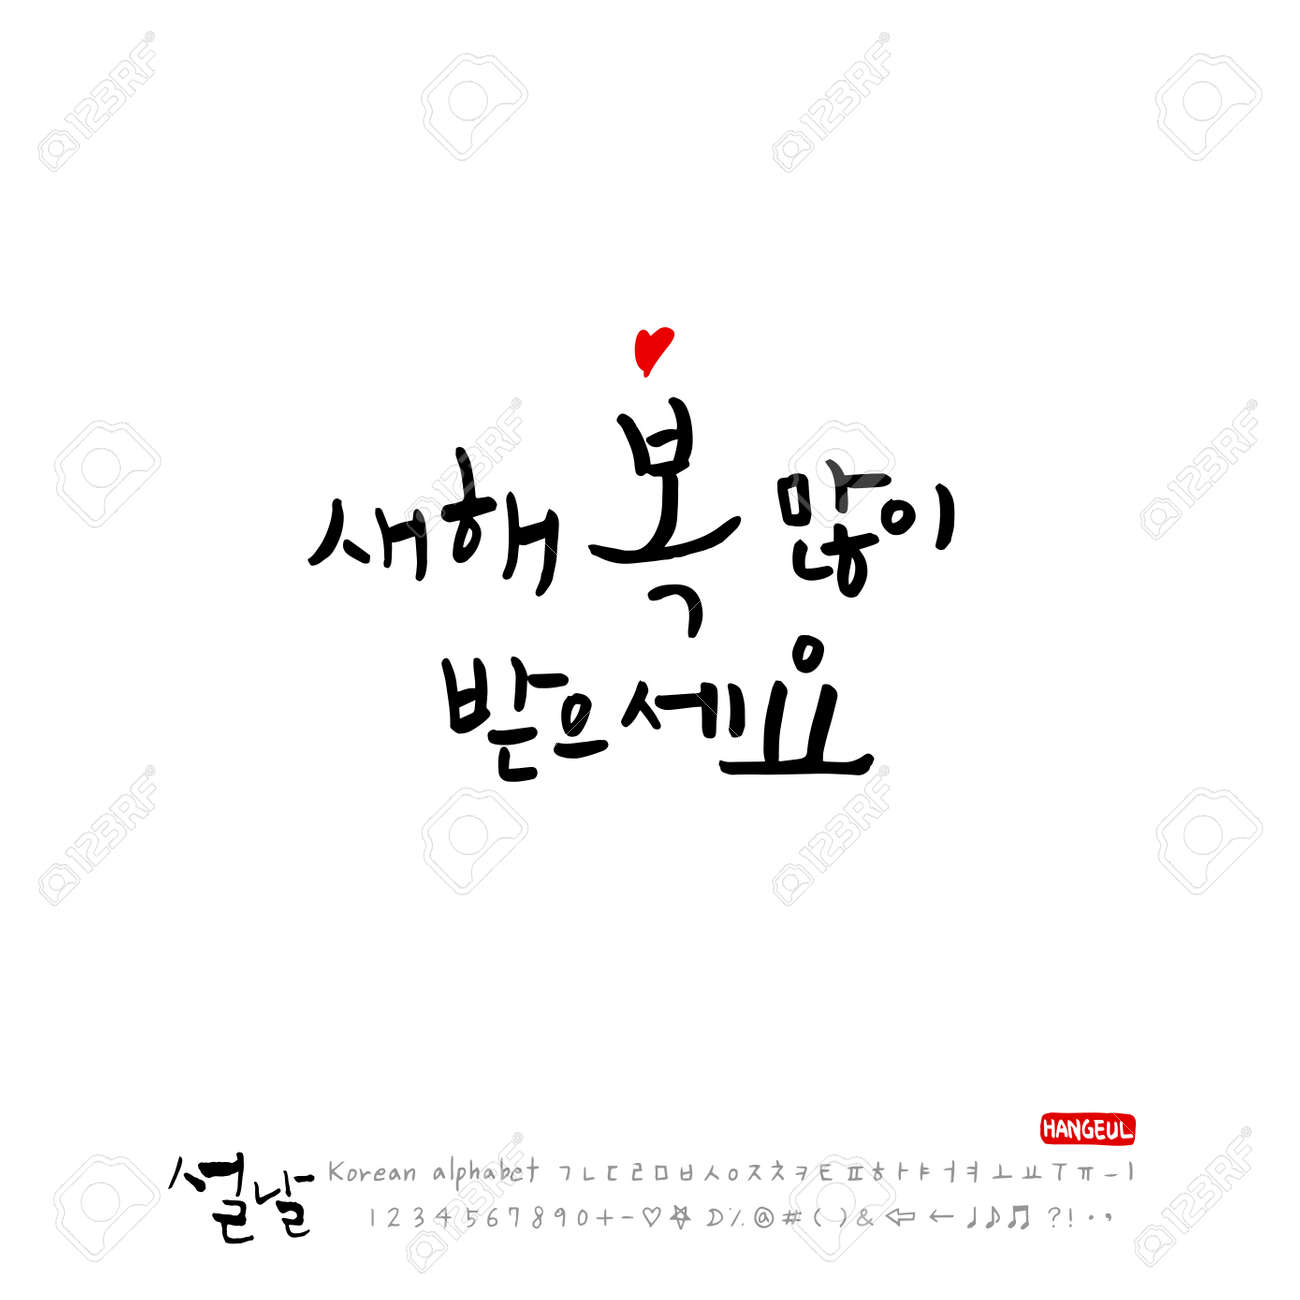 Handwritten korean alphabet calligraphy korean holidays handwritten korean alphabet calligraphy korean holidays new years day greeting happy new m4hsunfo